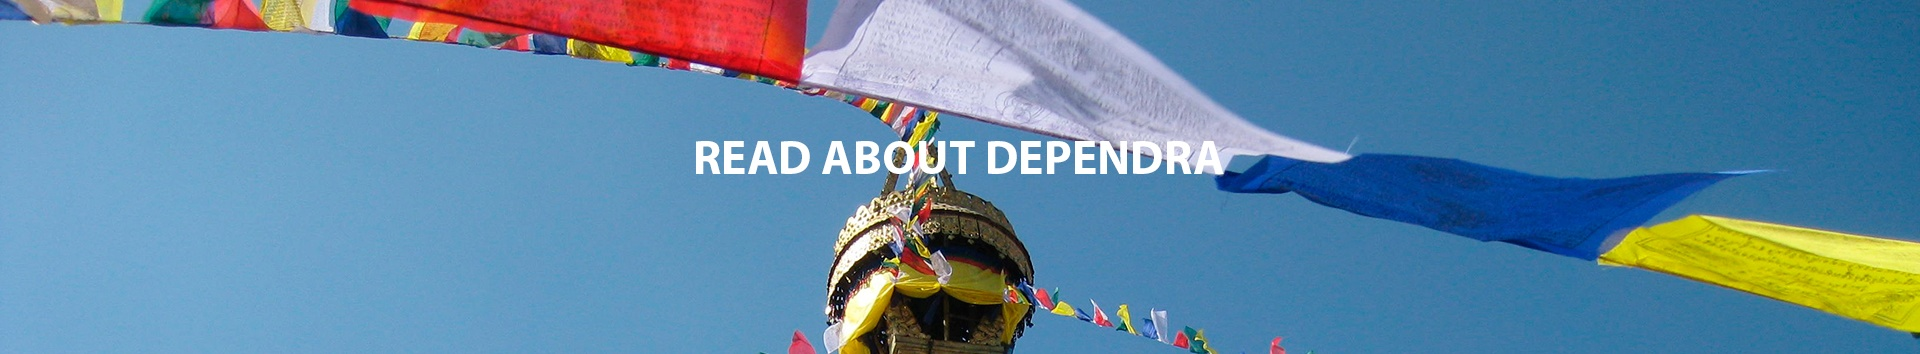 Read About Dependra